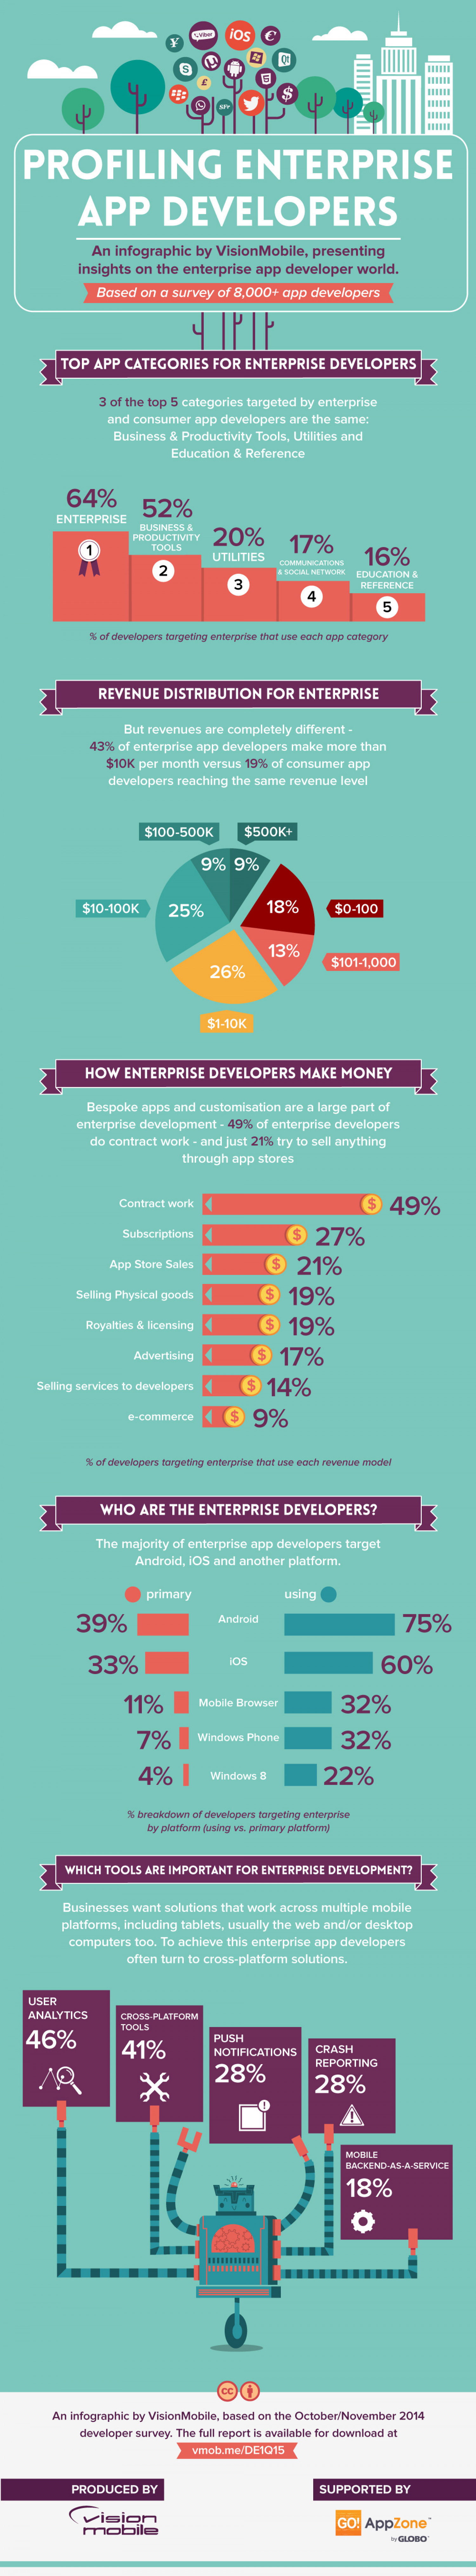 Profiling Enterprise App Developers Infographic